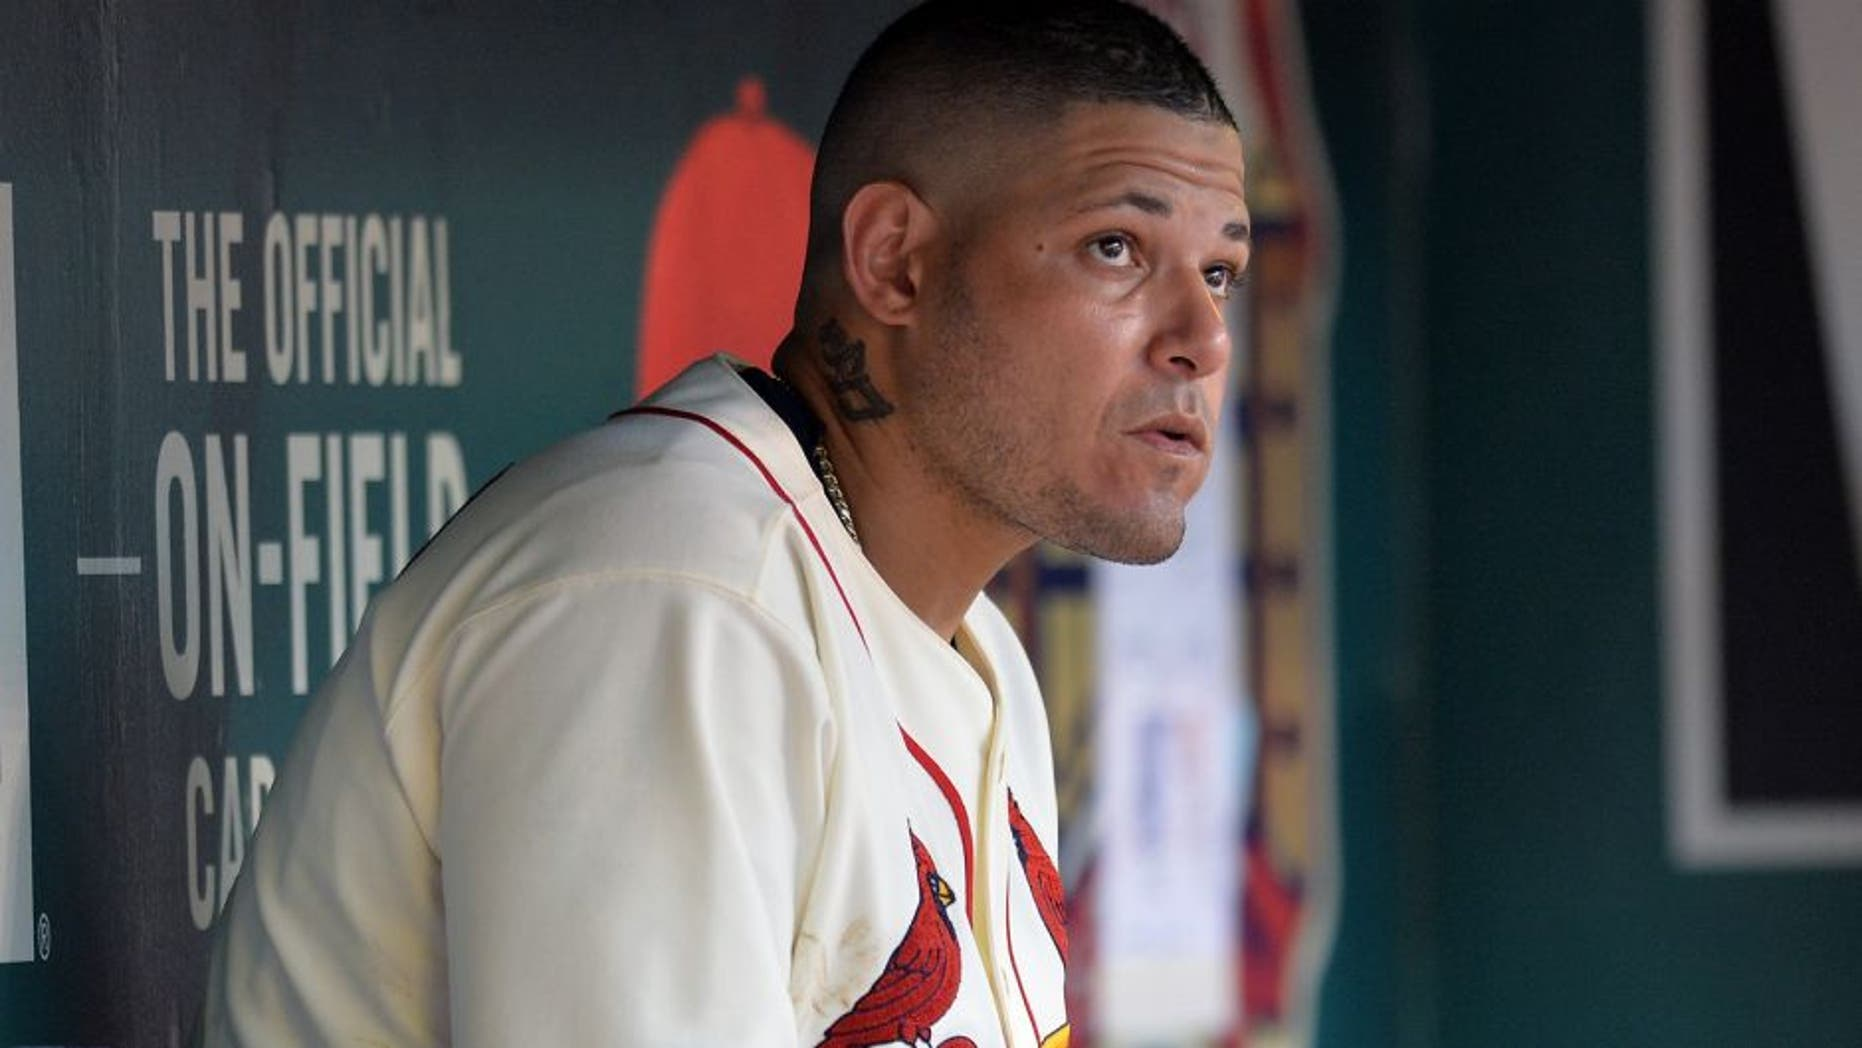 ST. LOUIS, MO - AUGUST 15: Yadier Molina #4 of the St. Louis Cardinals in the dugout during a game against the Miami Marlins at Busch Stadium on August 15, 2015 in St. Louis, Missouri. (Photo by Michael Thomas/Getty Images)